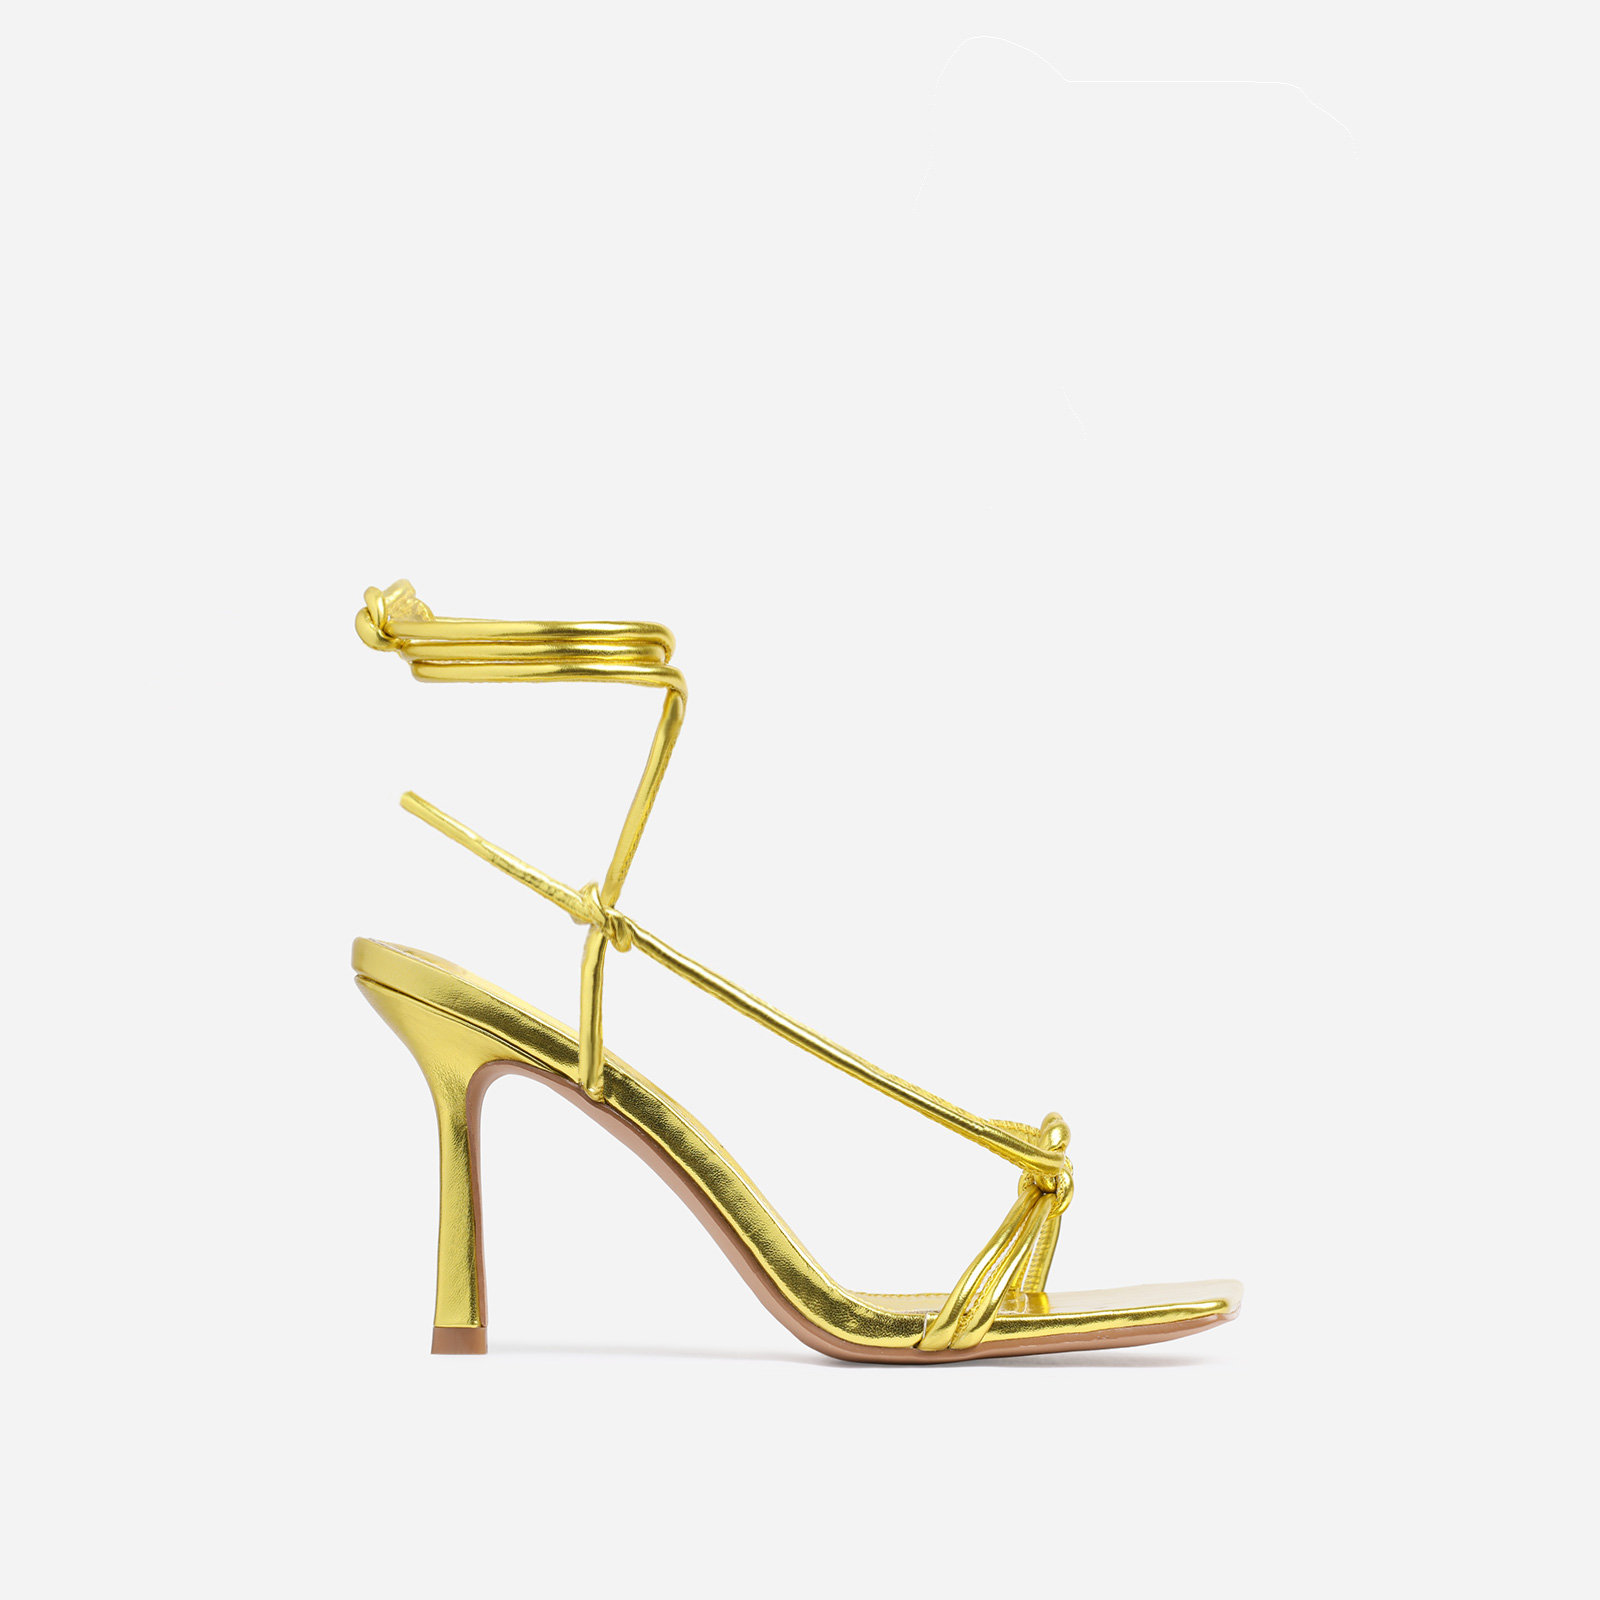 Priya Square Toe Lace Up Heel In Gold Faux Leather